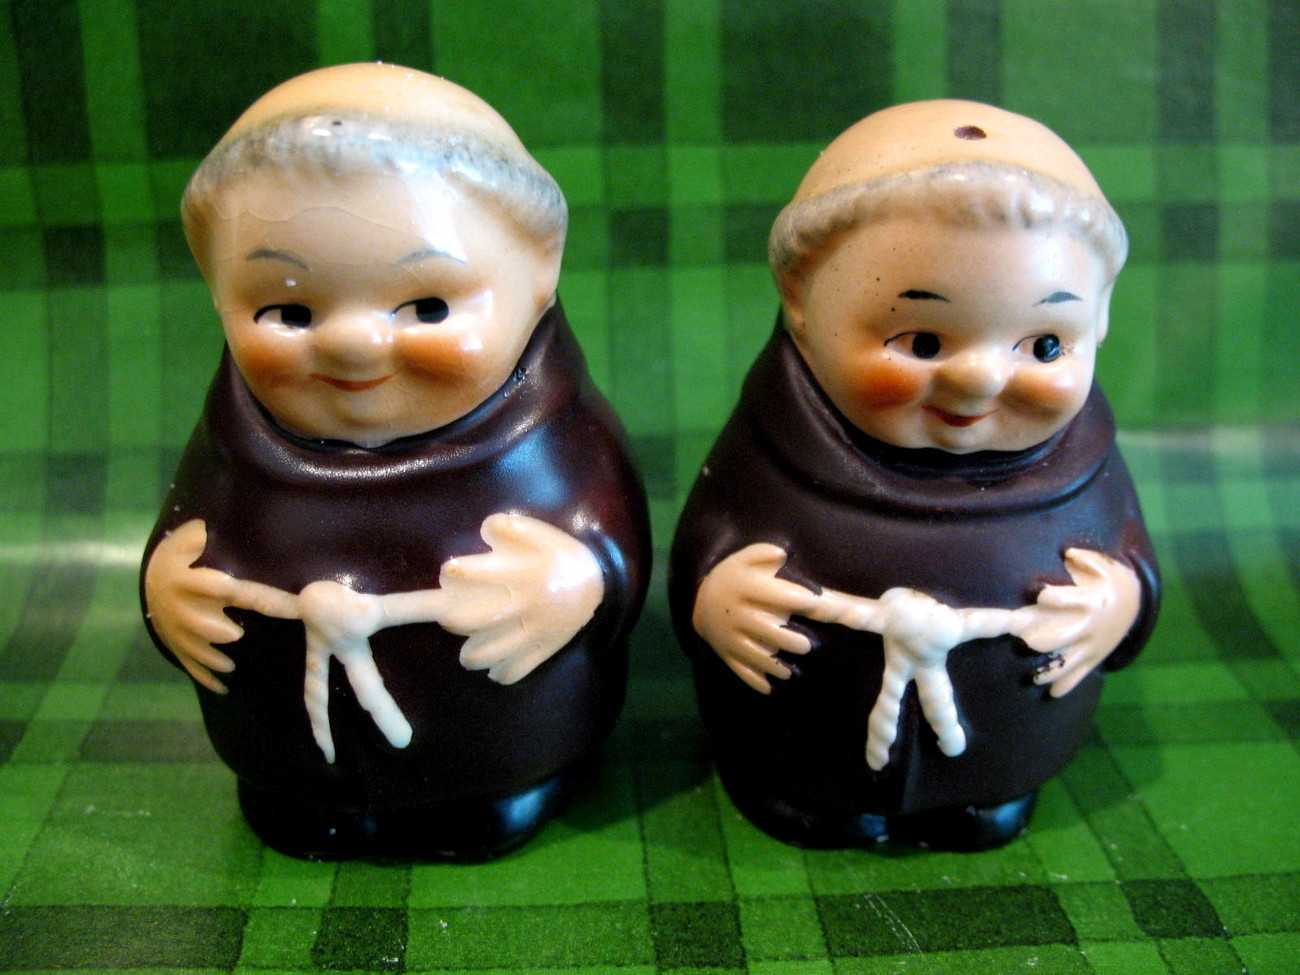 Goebel Friar Tuck Monks Salt and Pepper Shakers Set 1950's Collector Vintage